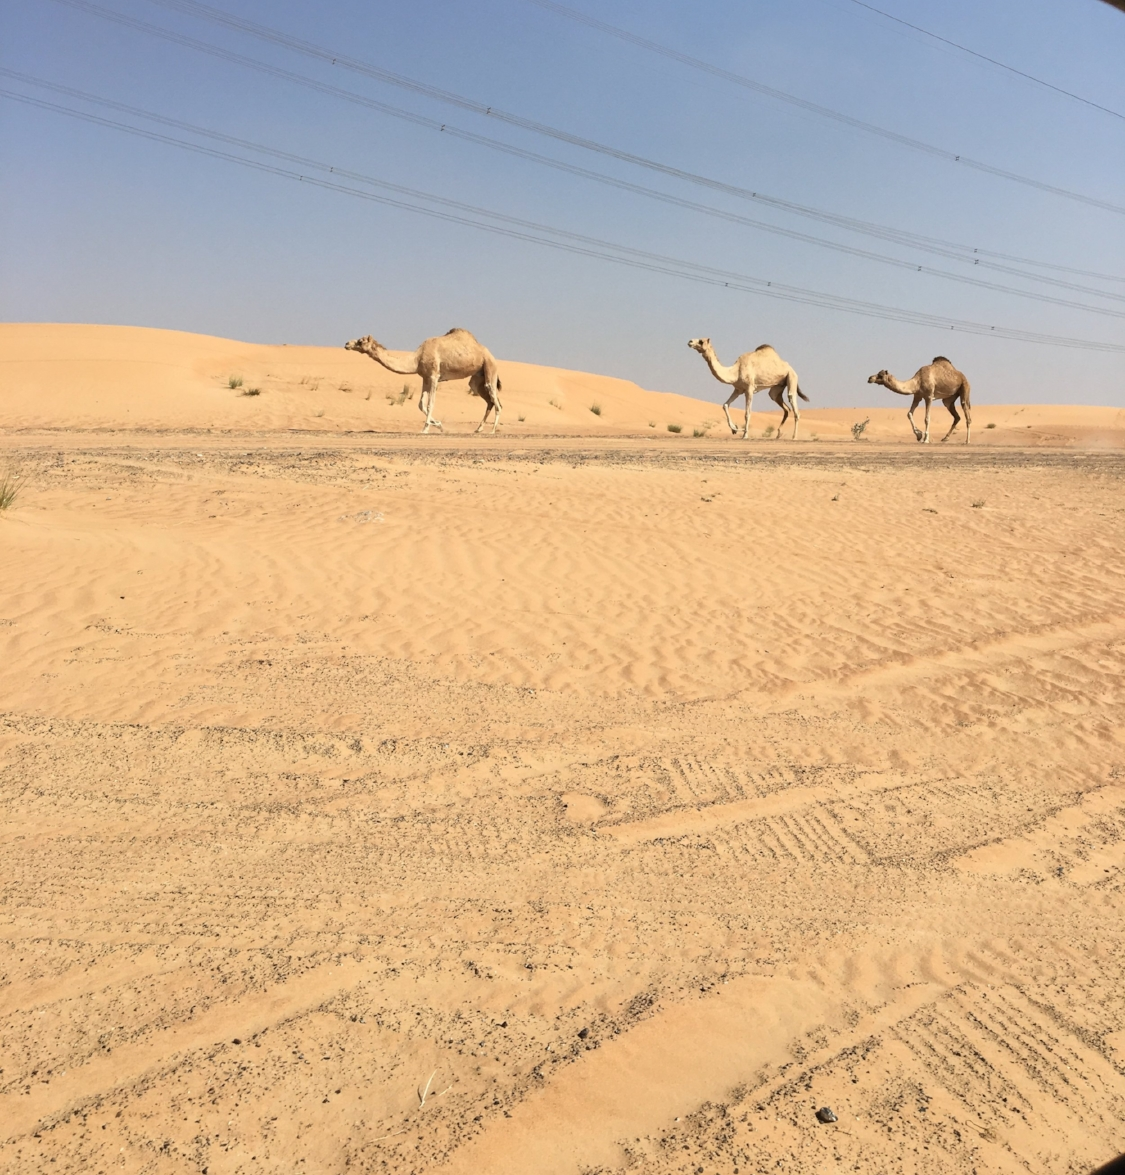 we even caught a glimpse of some camels on our ride